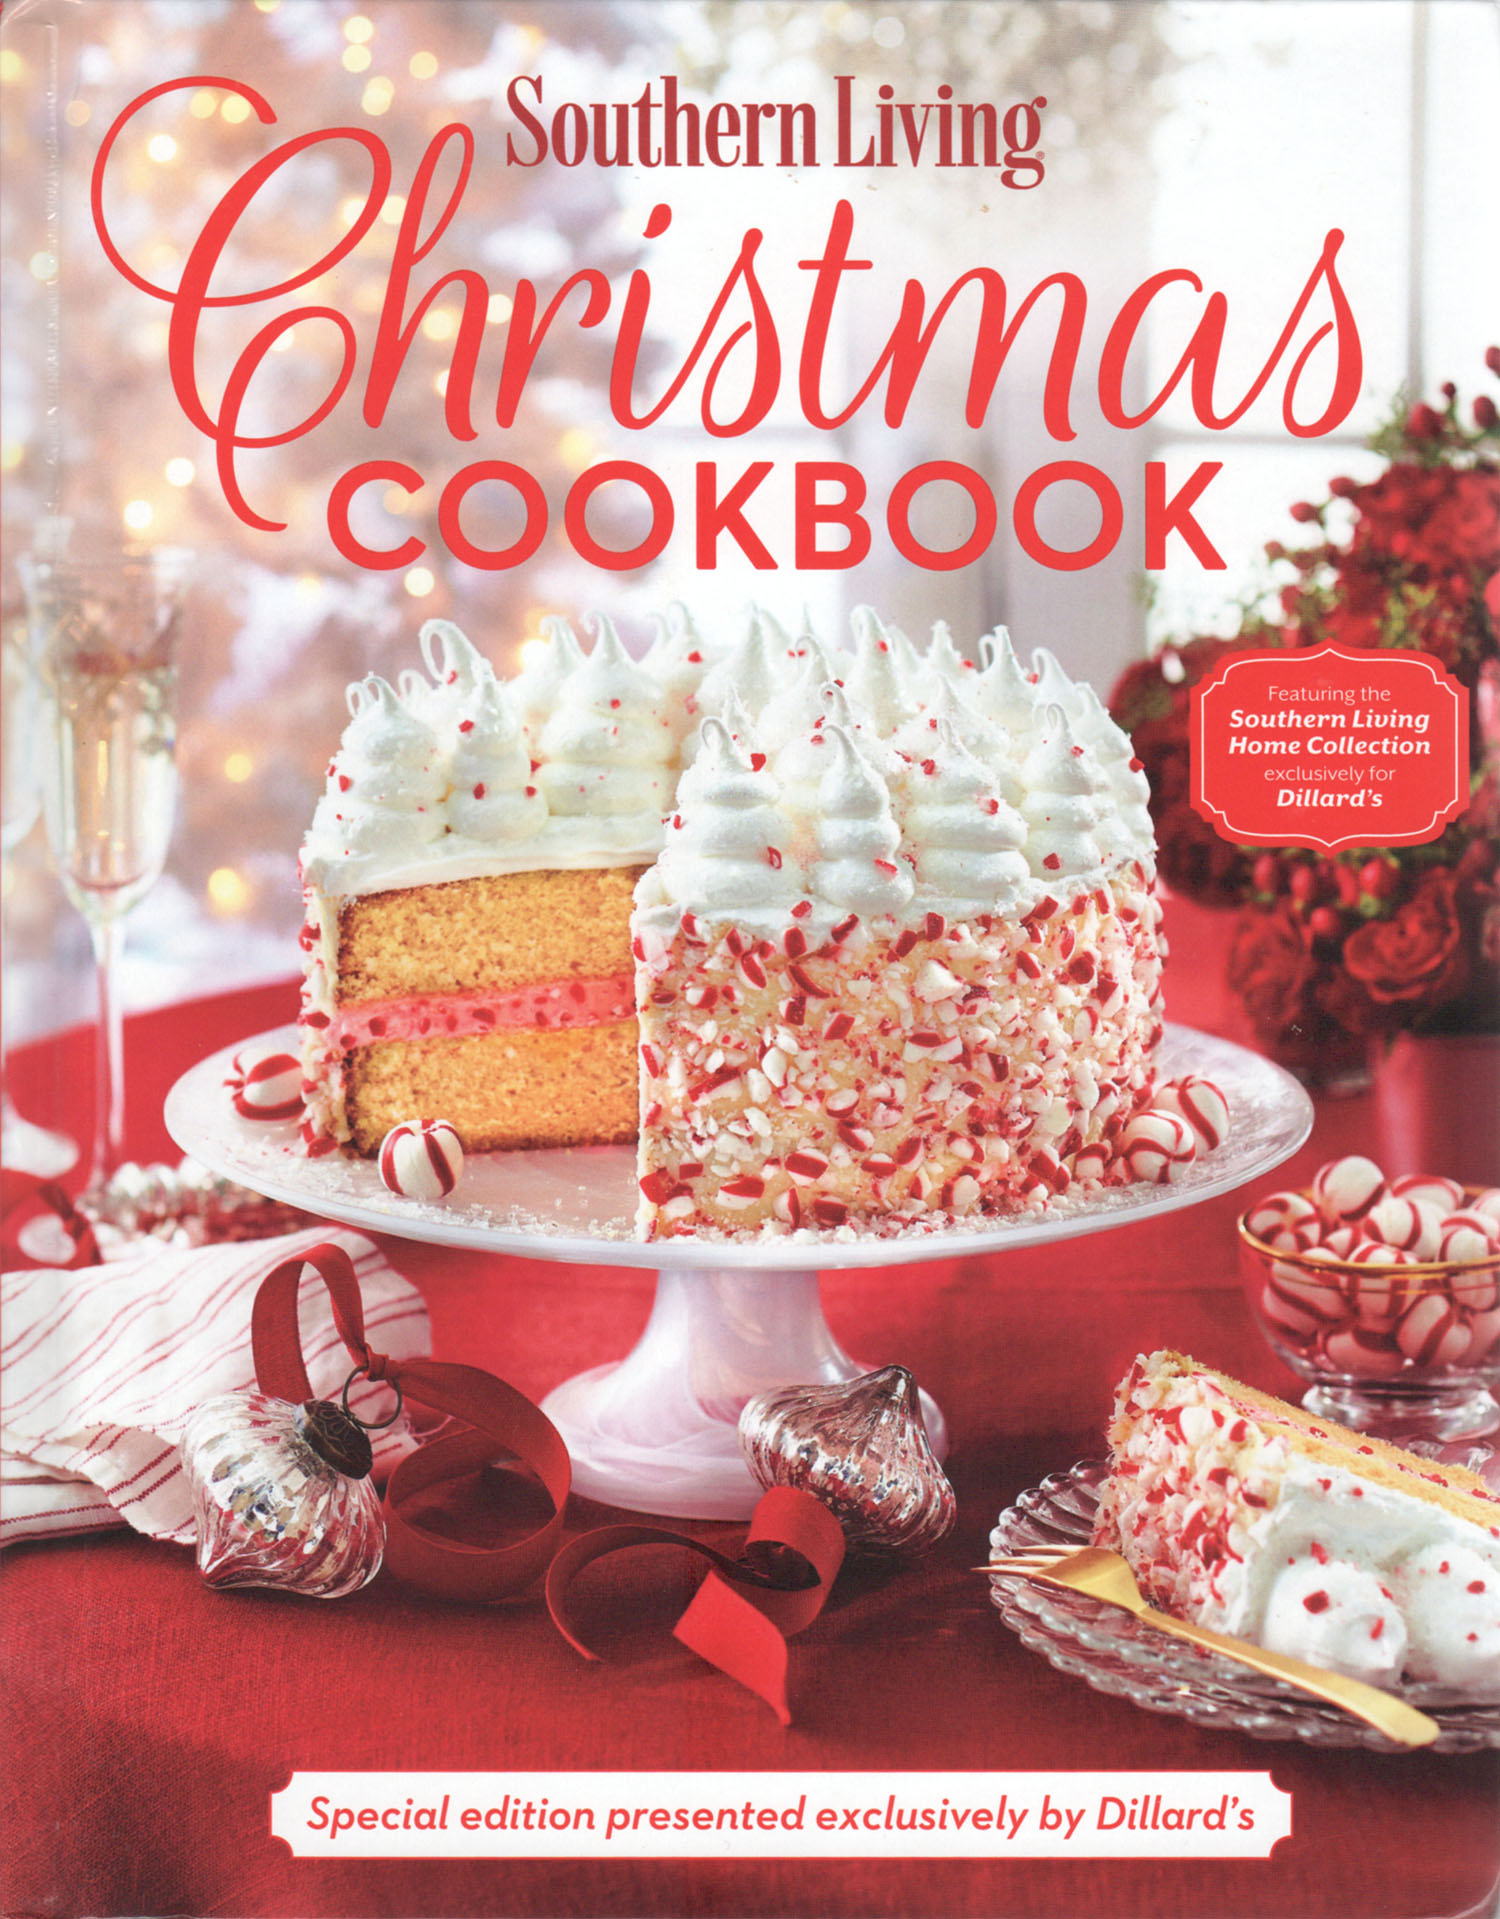 Paterson-SL-COOKBOOKcover-dec17.jpg